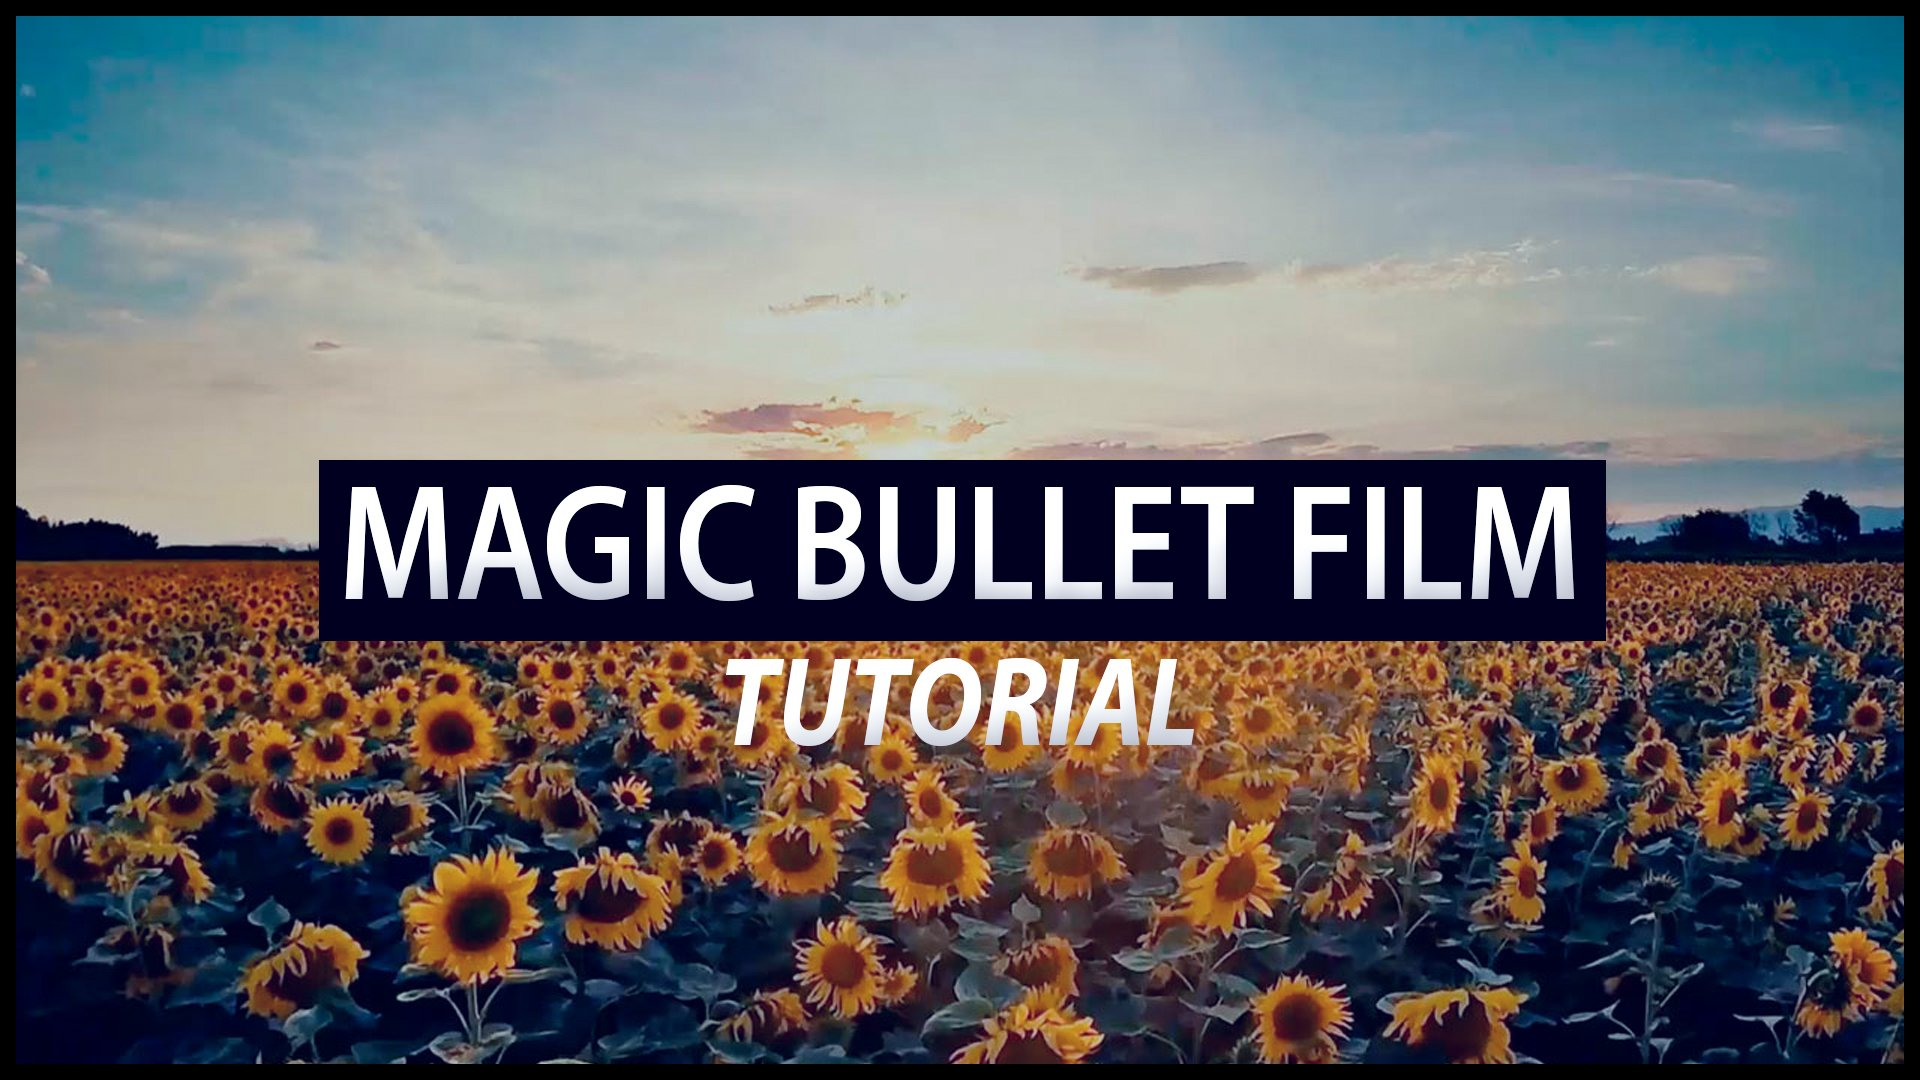 #4 MAGIC BULLET FILM - TUTORIAL (S E R E B R Y Λ K O V)